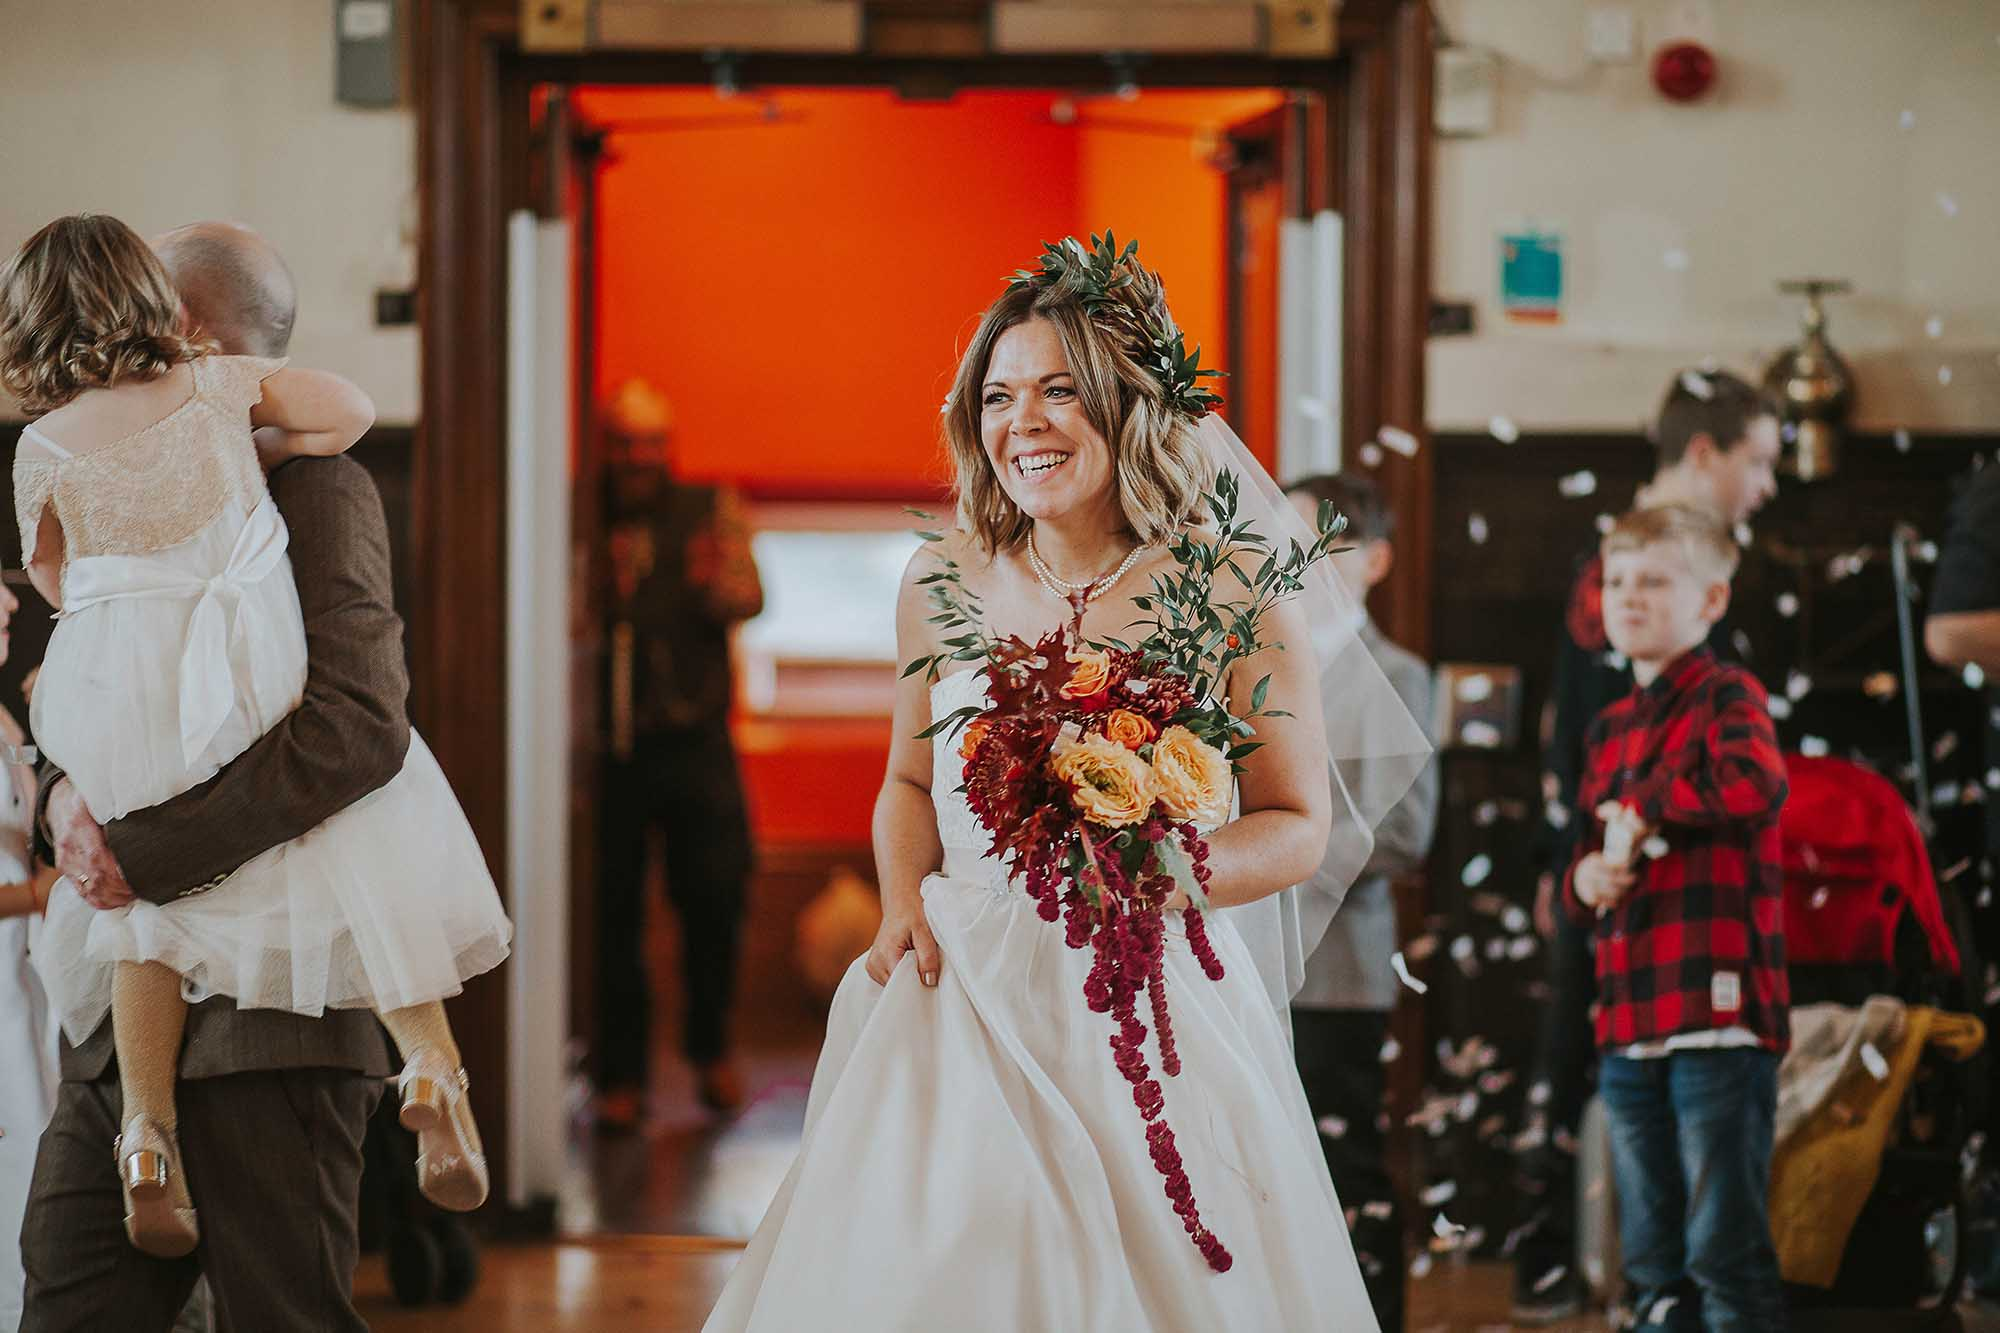 Todmorden Town Hall wedding